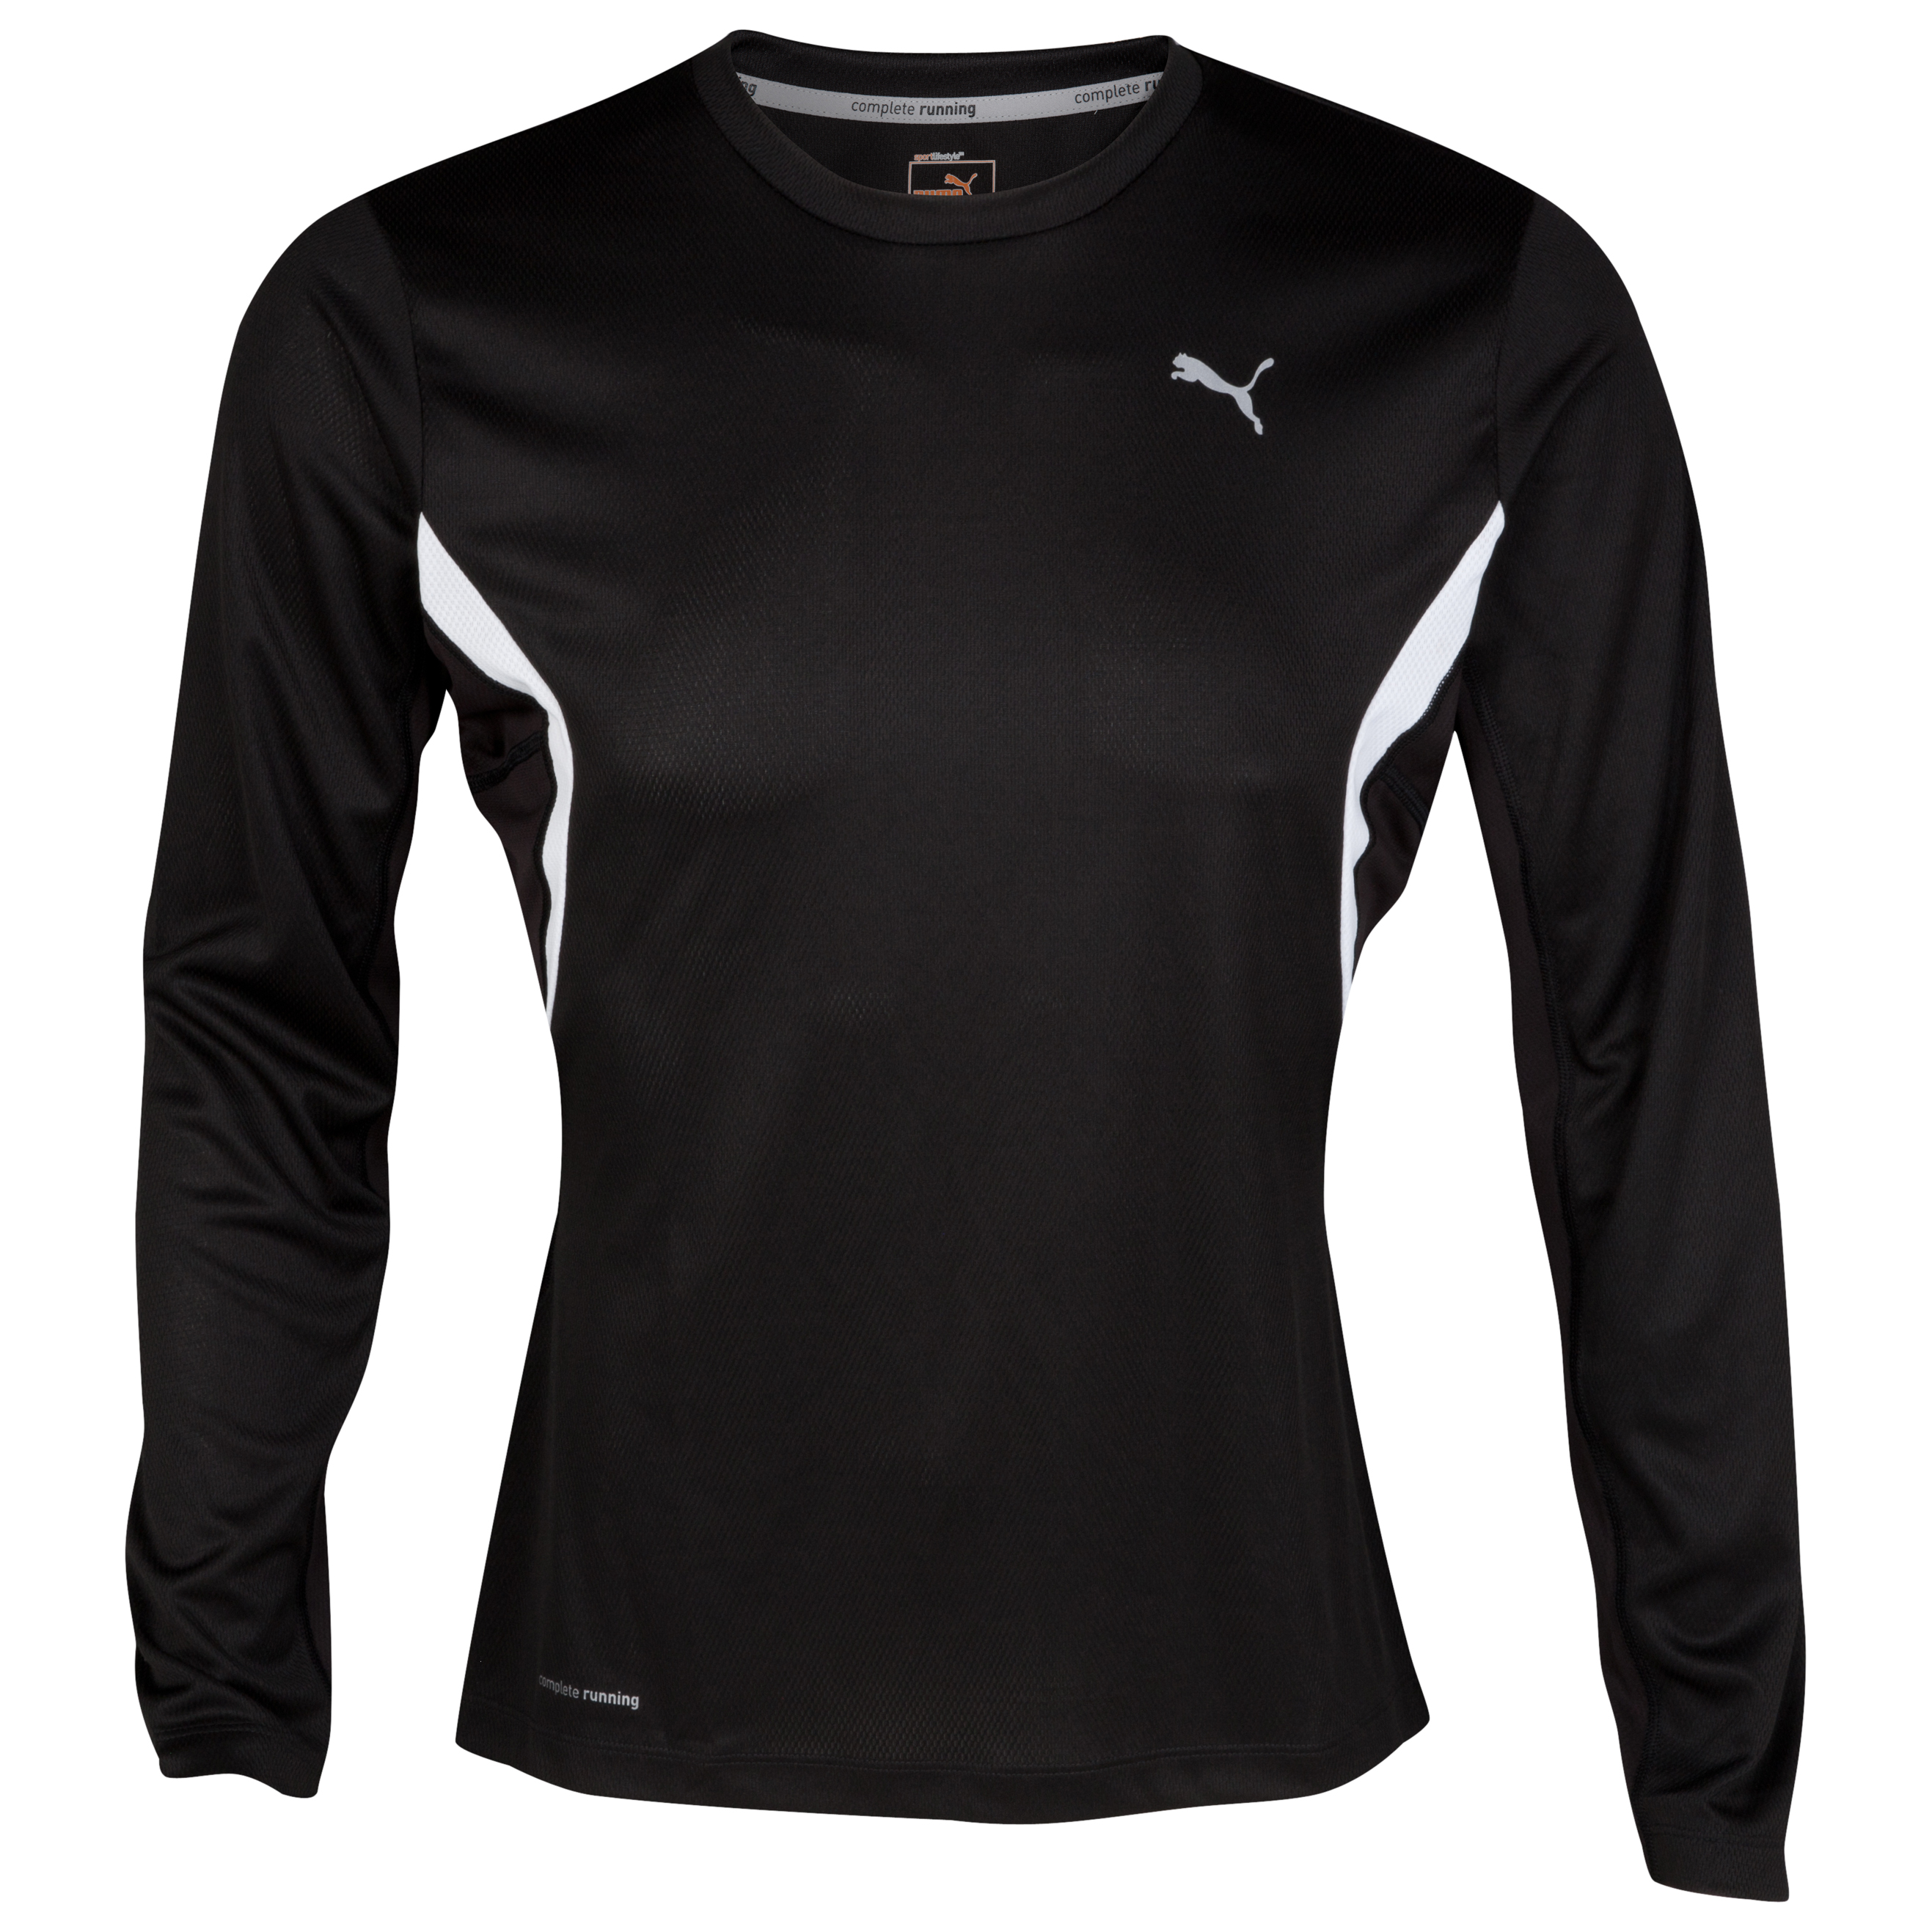 Puma Essentials T-Shirt - Long Sleeve - Black